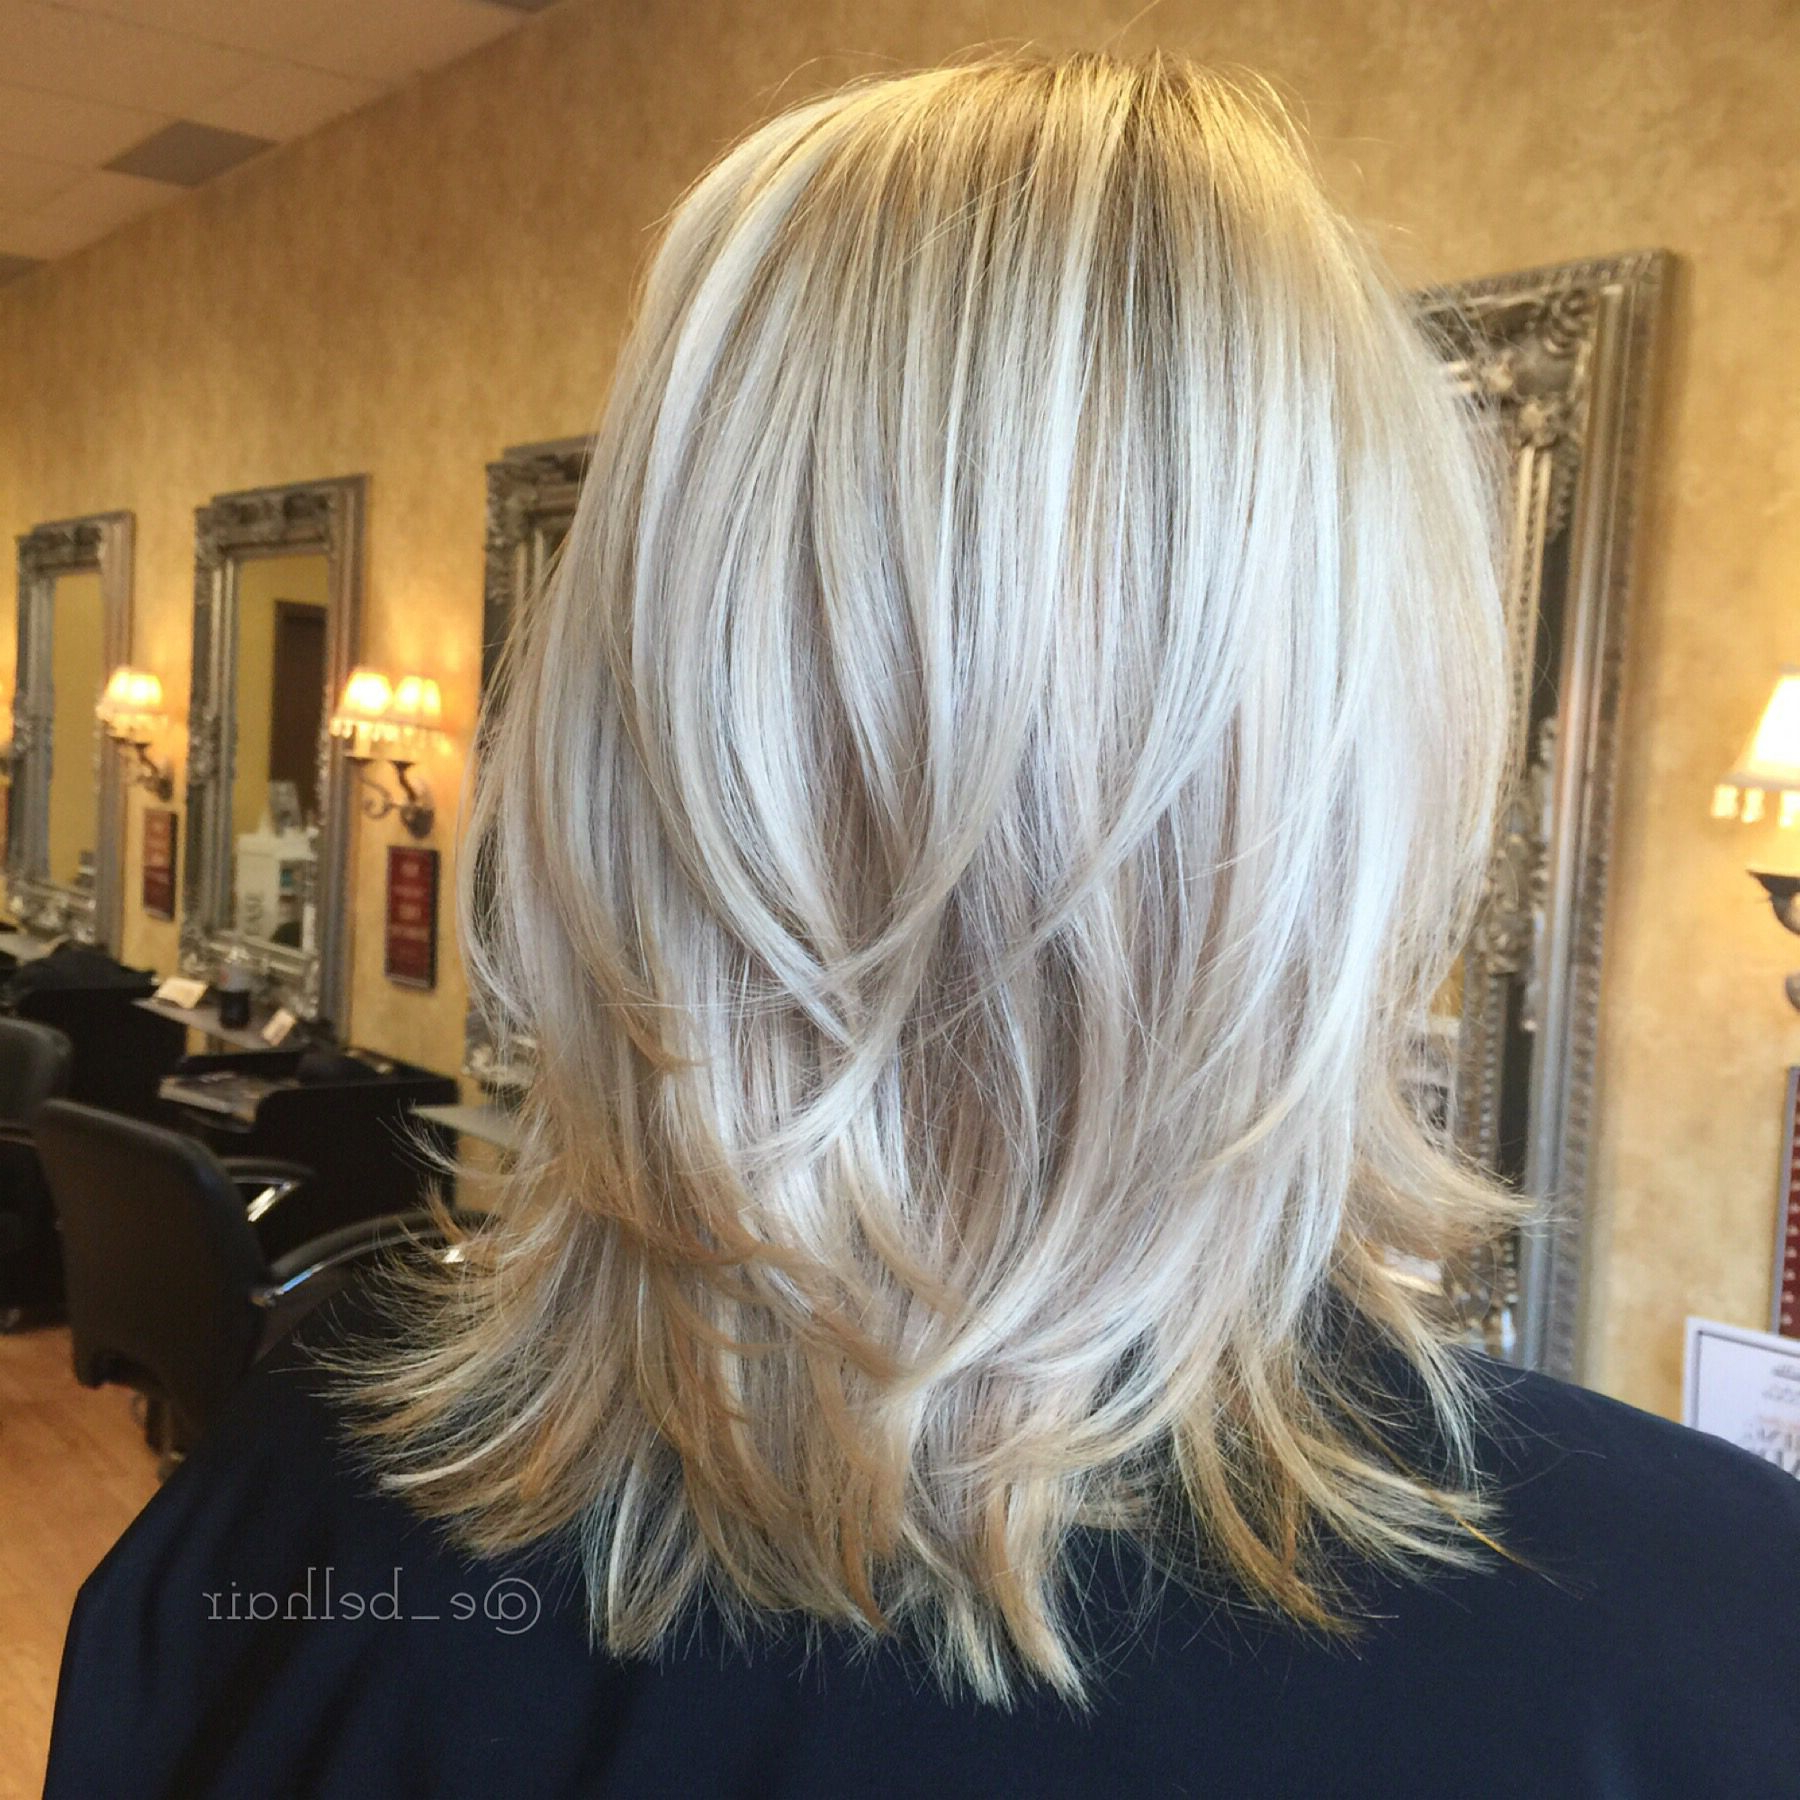 Shoulder Length Cut With Tousled Layers And Fresh Blonde Color Intended For Tousled Short Hairstyles (View 17 of 25)